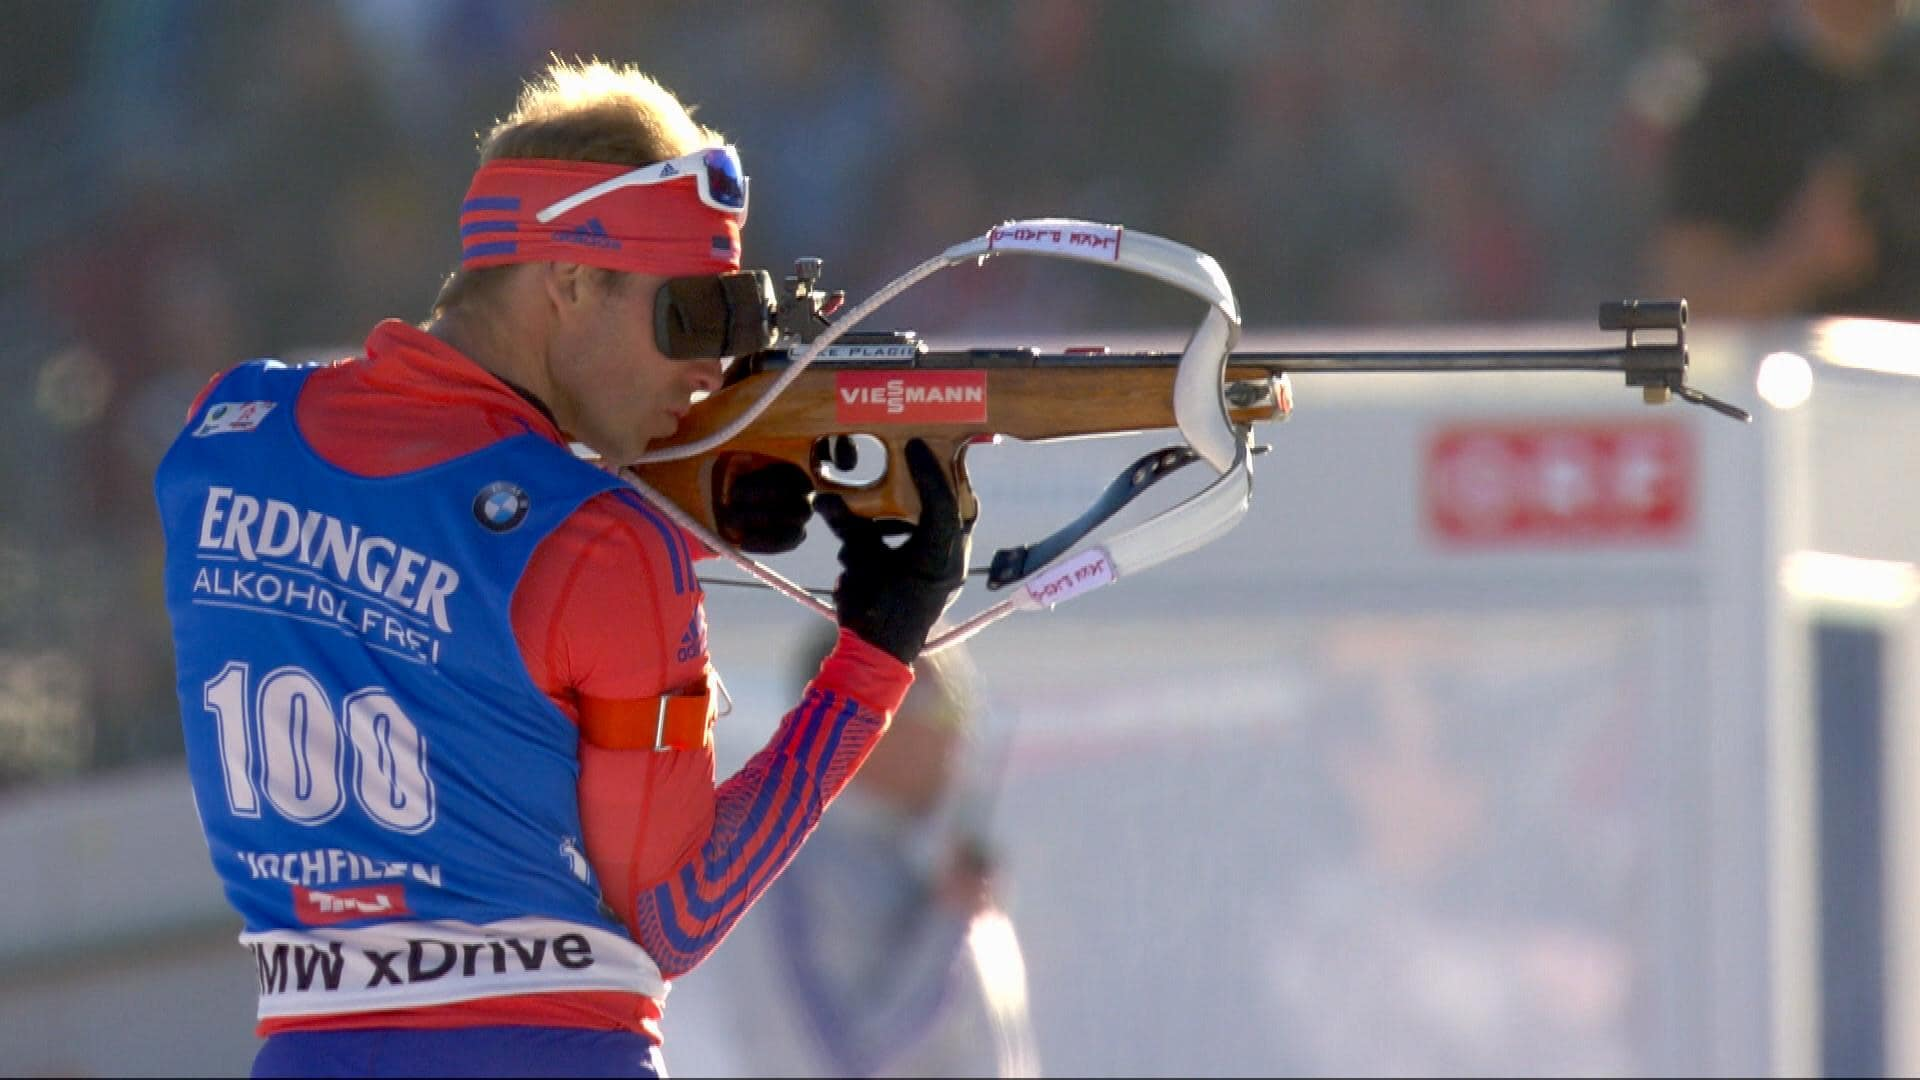 U.S. biathlete Lowell Bailey is a graduate of the University of Vermont. NBC